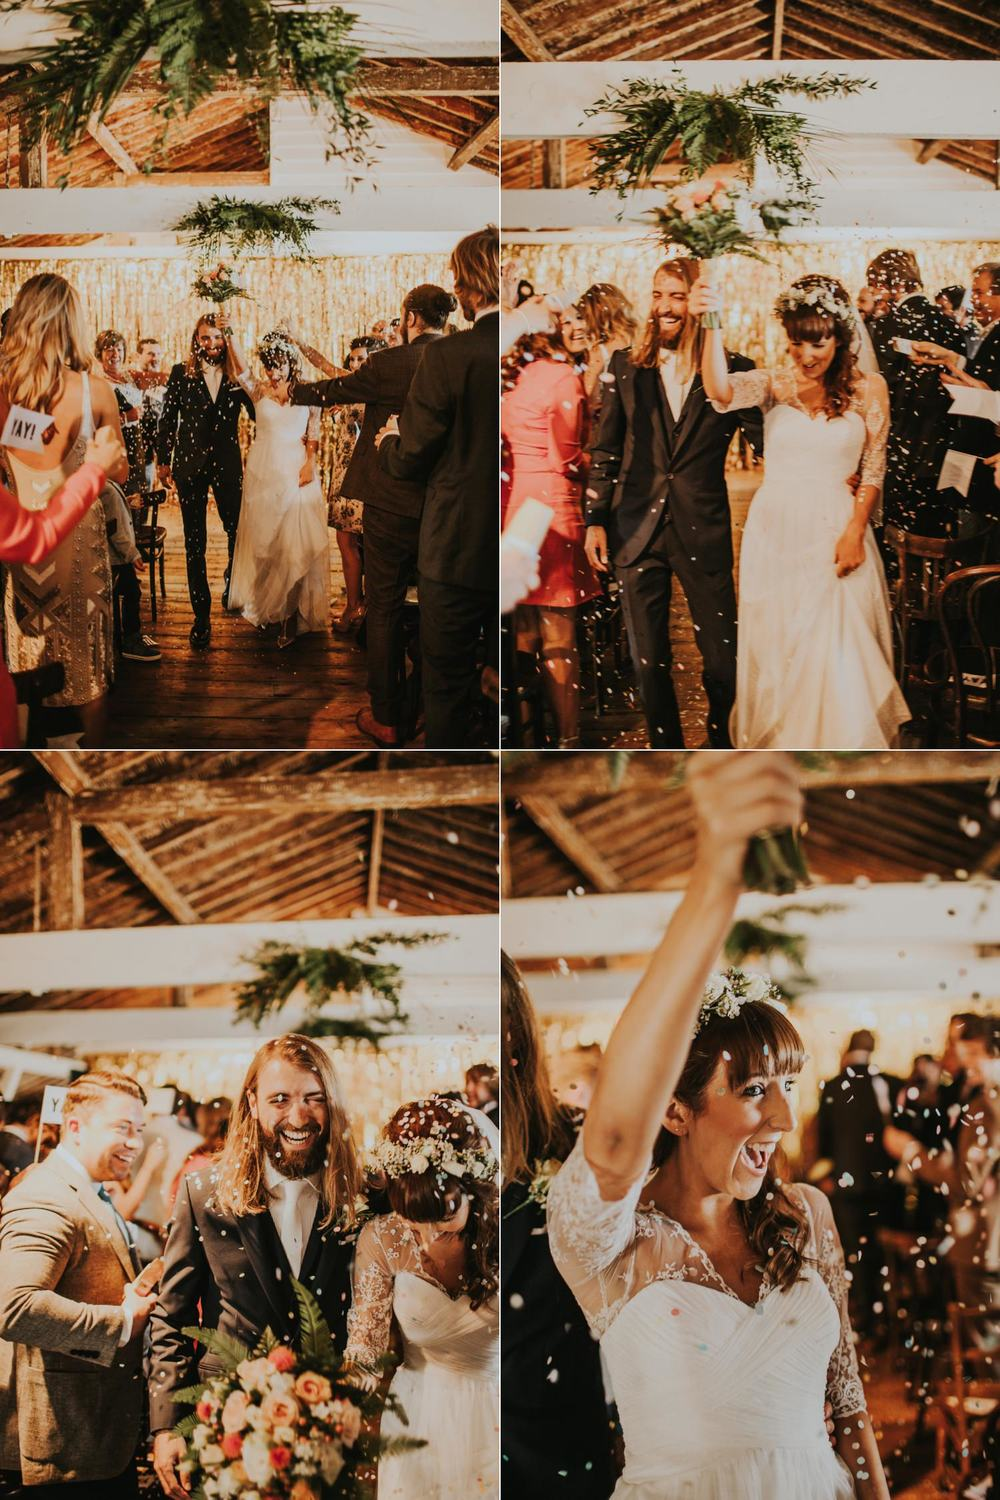 whistable_lobster_shack_wedding_0009.jpg